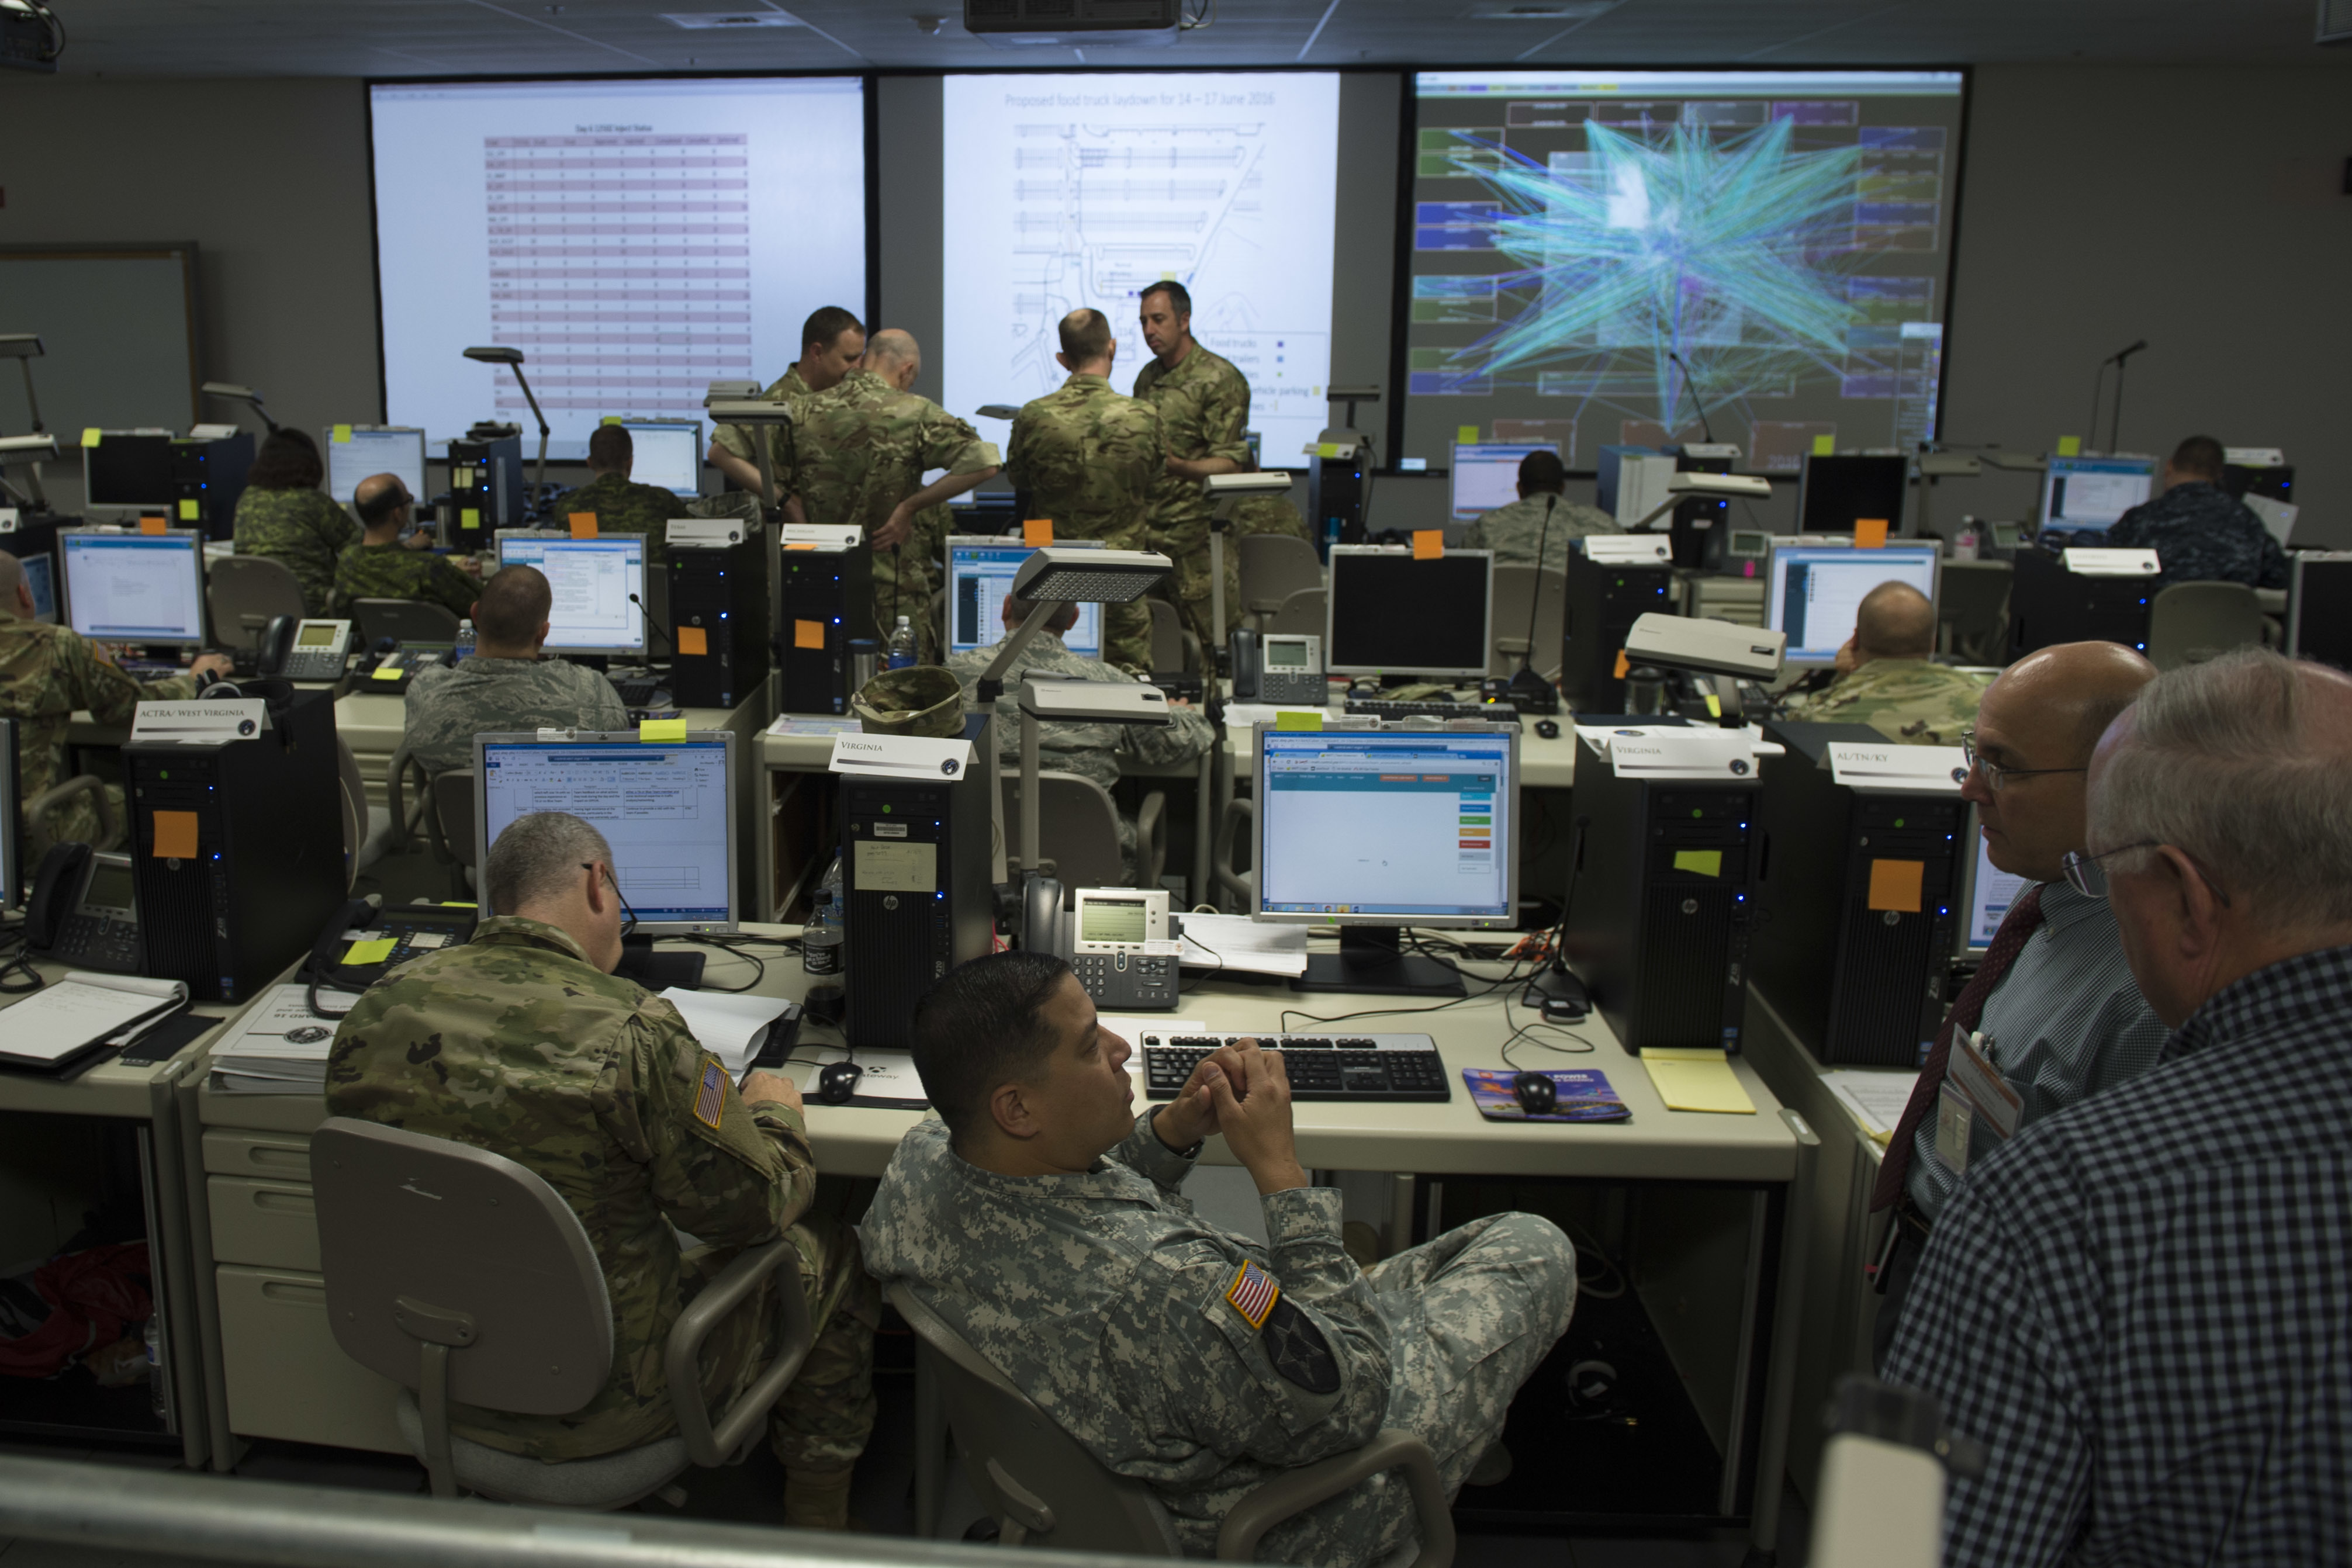 The Army wants to showcase its cyber warrior training platform